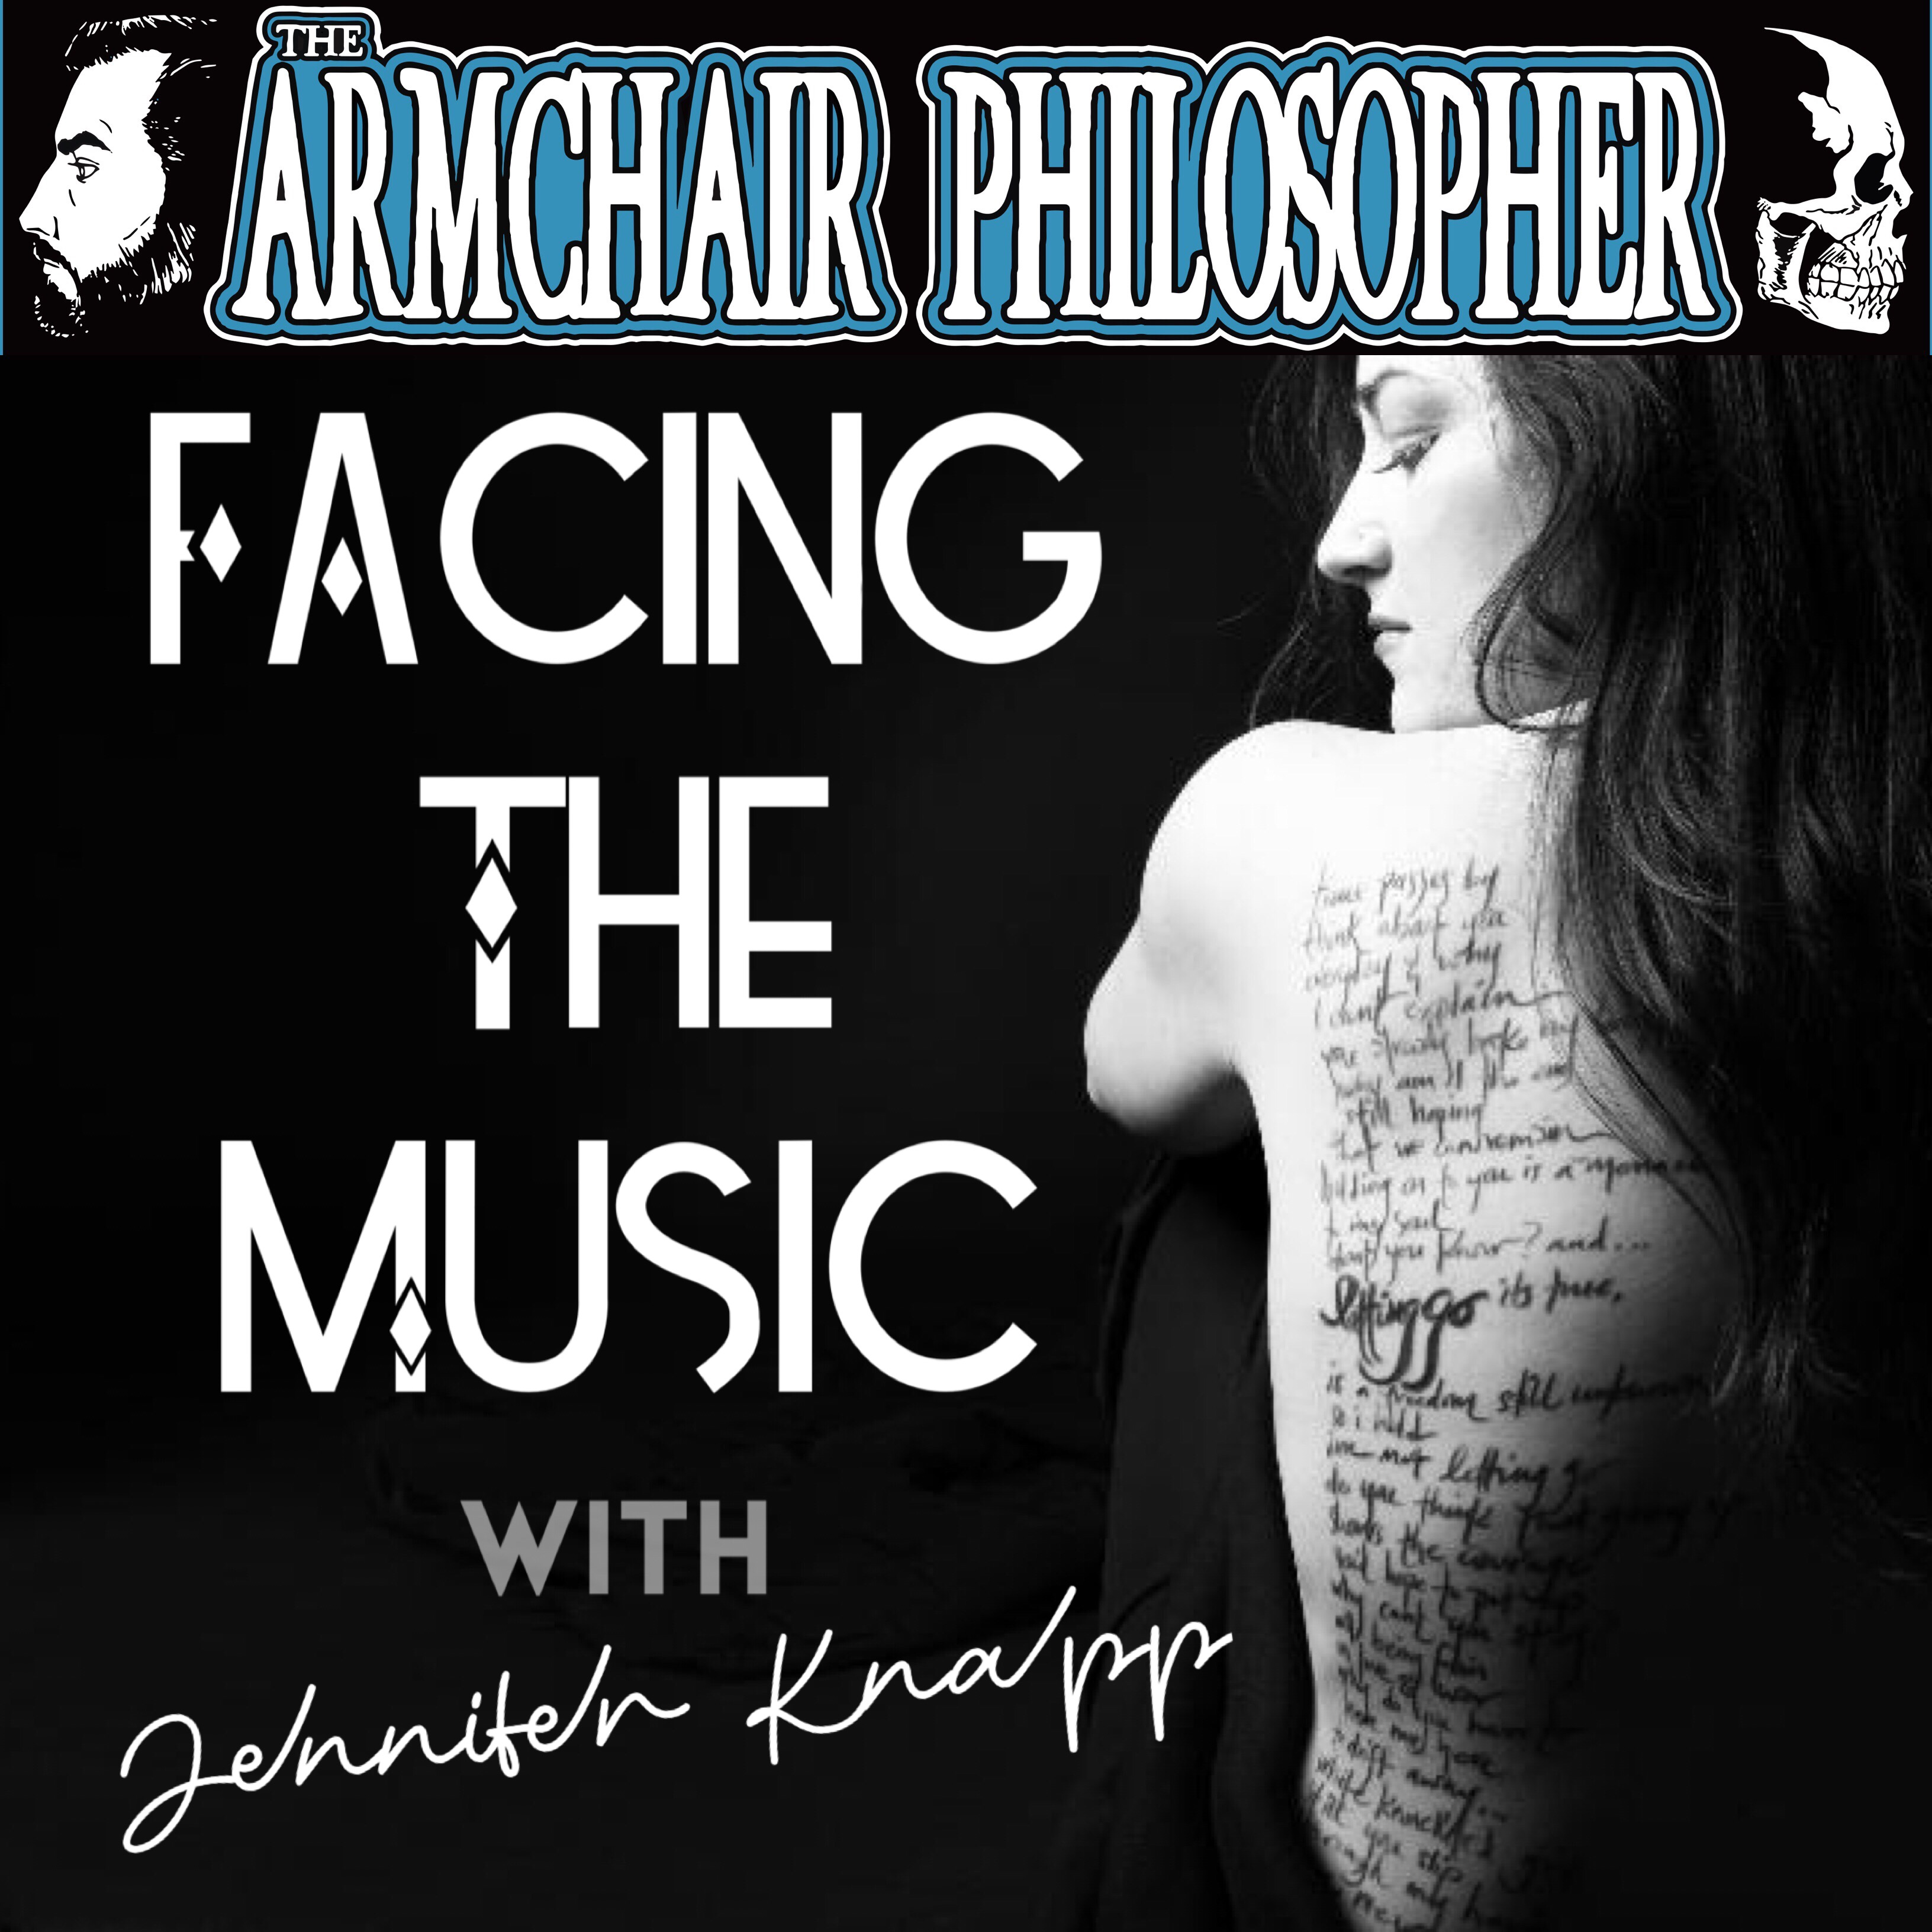 Facing The Music With Jennifer Knapp